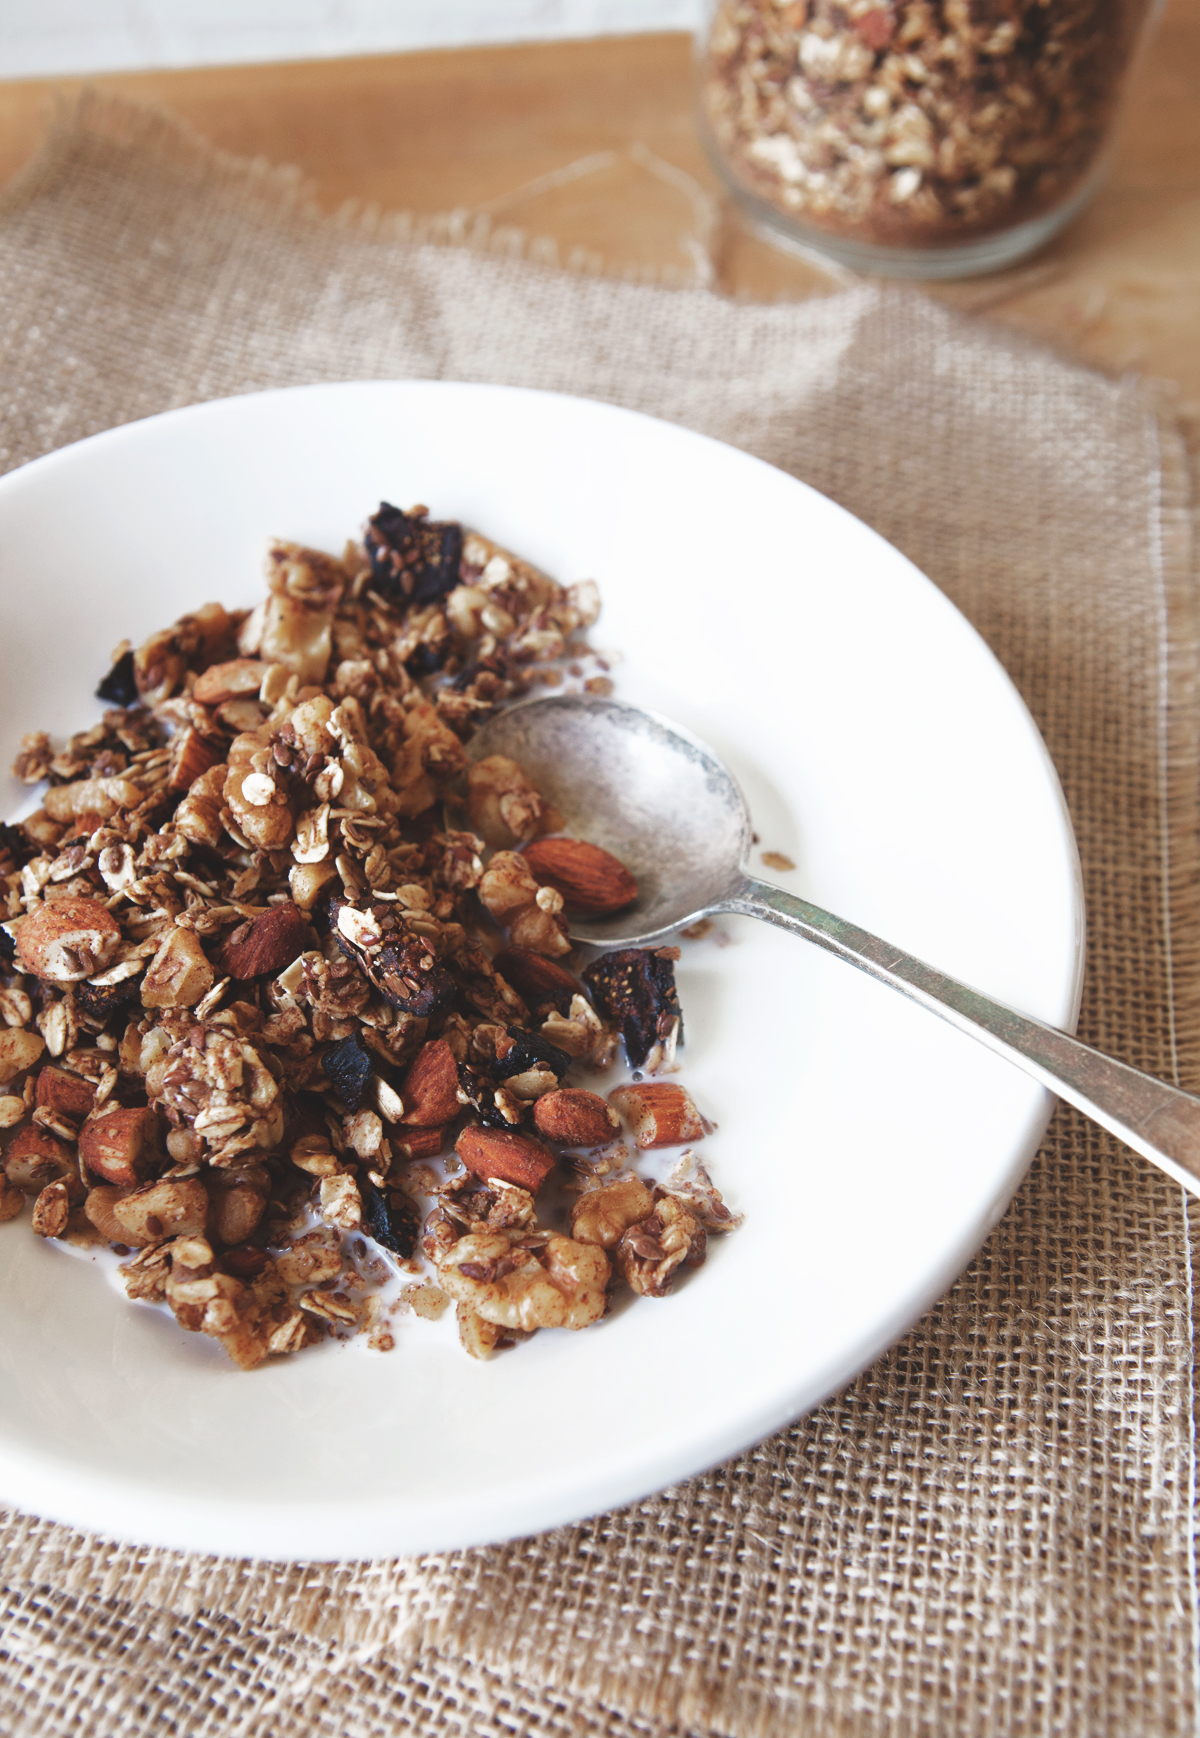 Winter-Fig-and-Spiced-Vanilla-Cereal_01.jpg